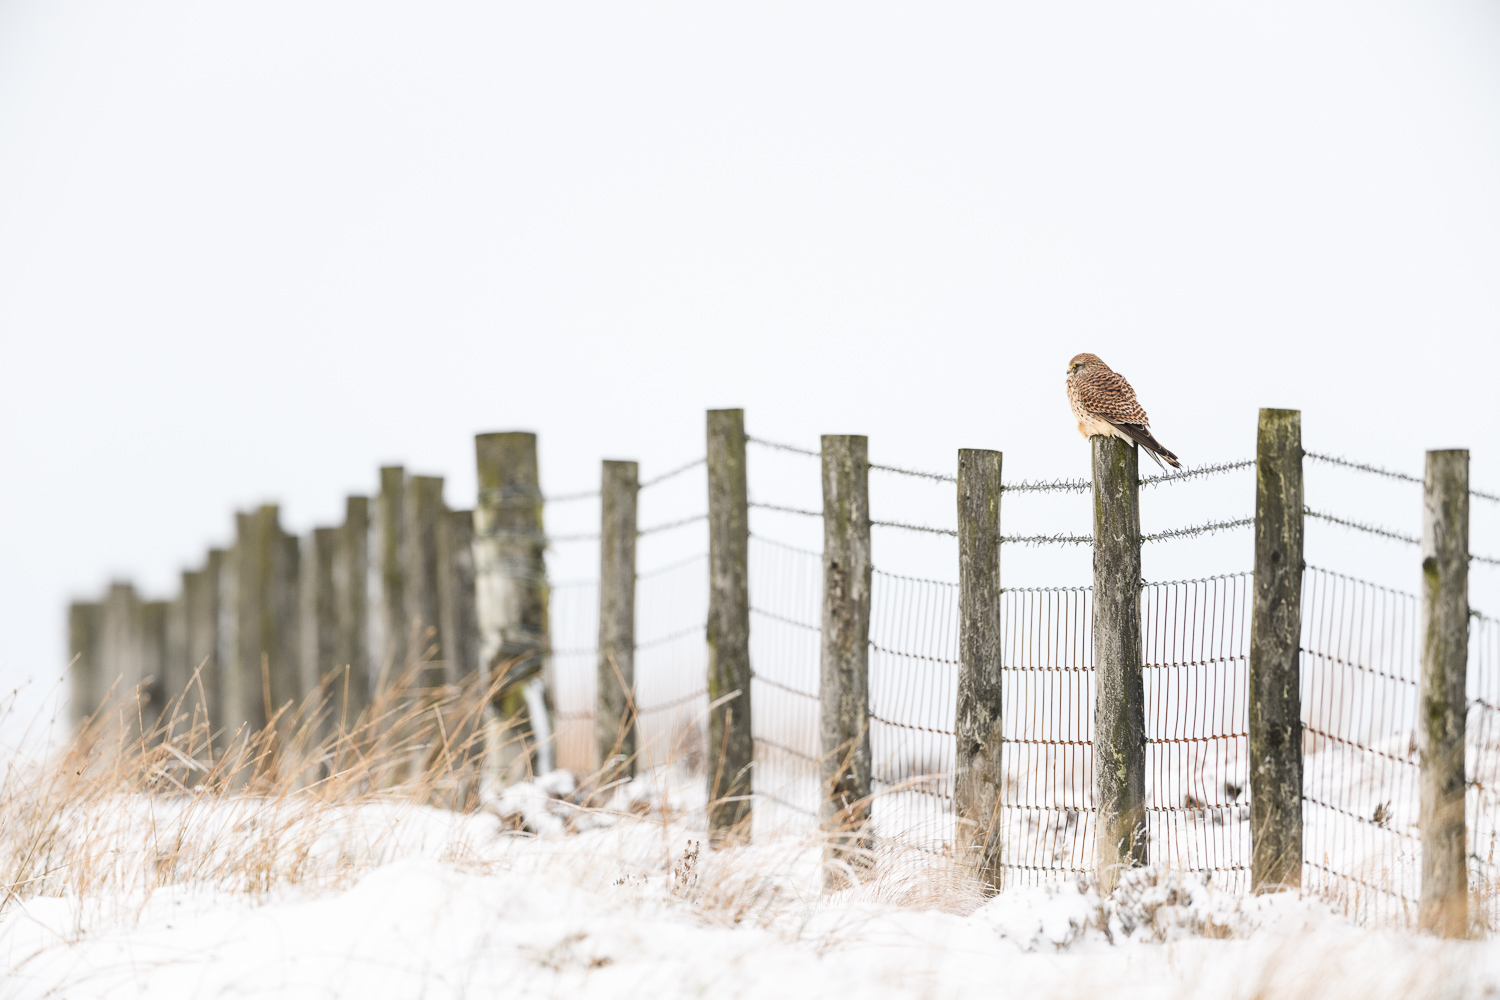 Kestrel in a Wintry Peak District